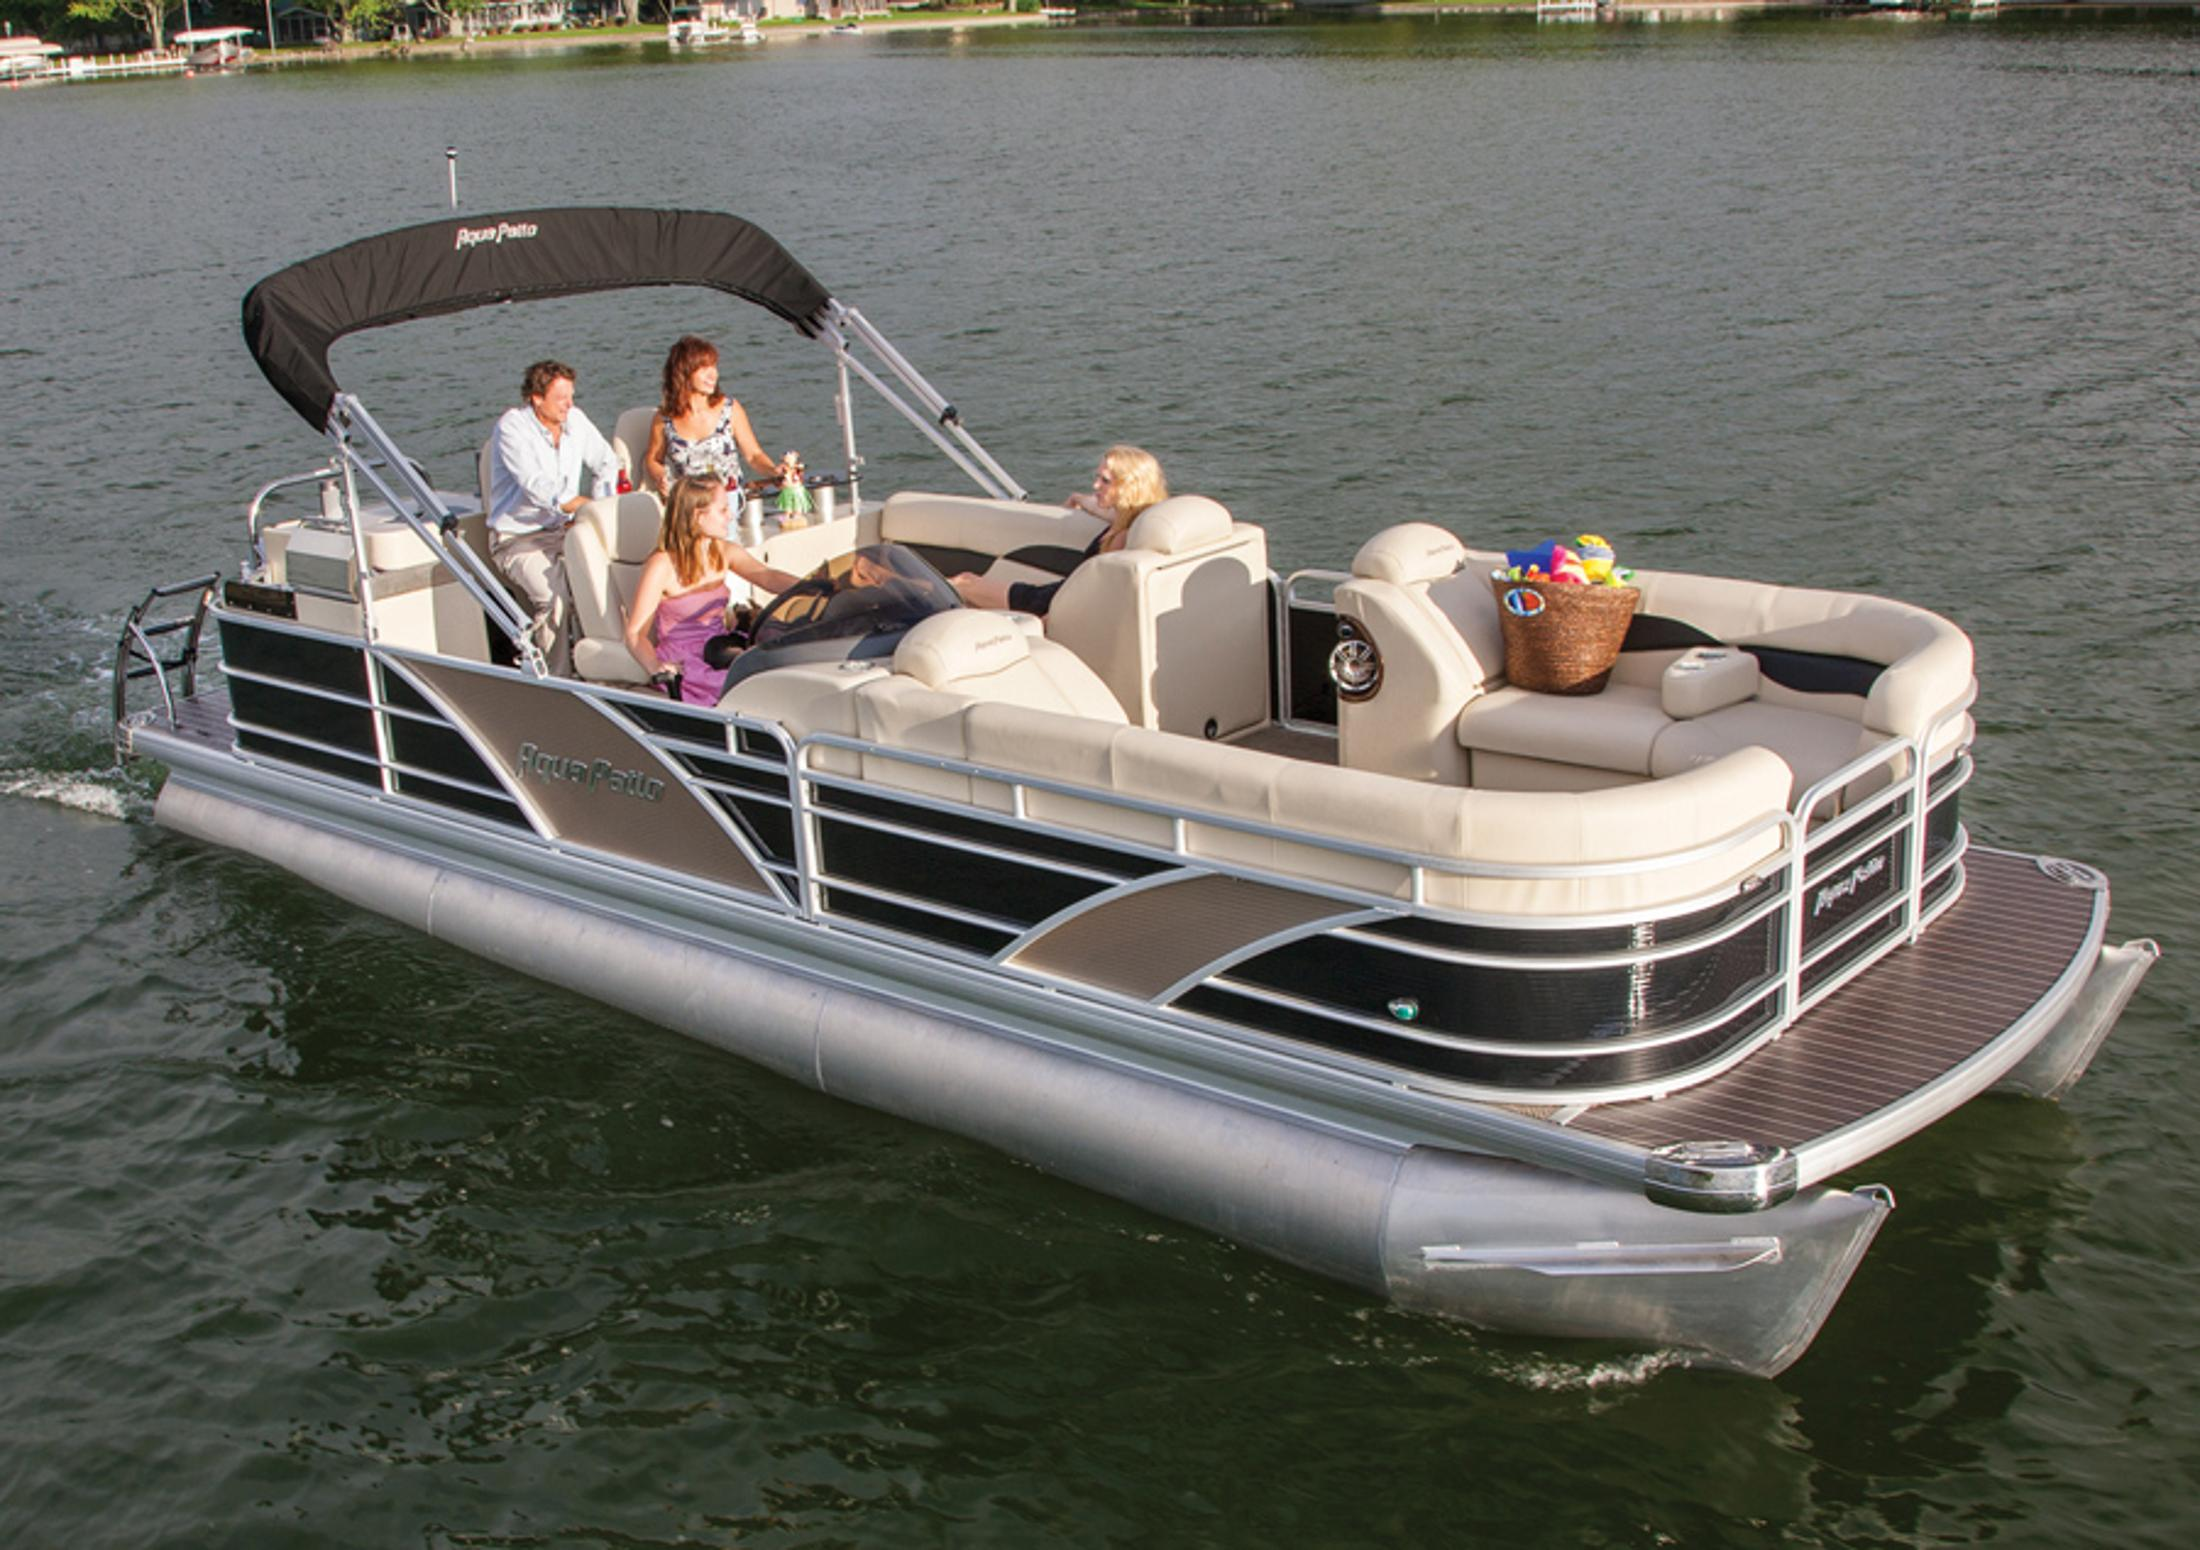 Quot Pontoon Quot Boat Listings In Nj